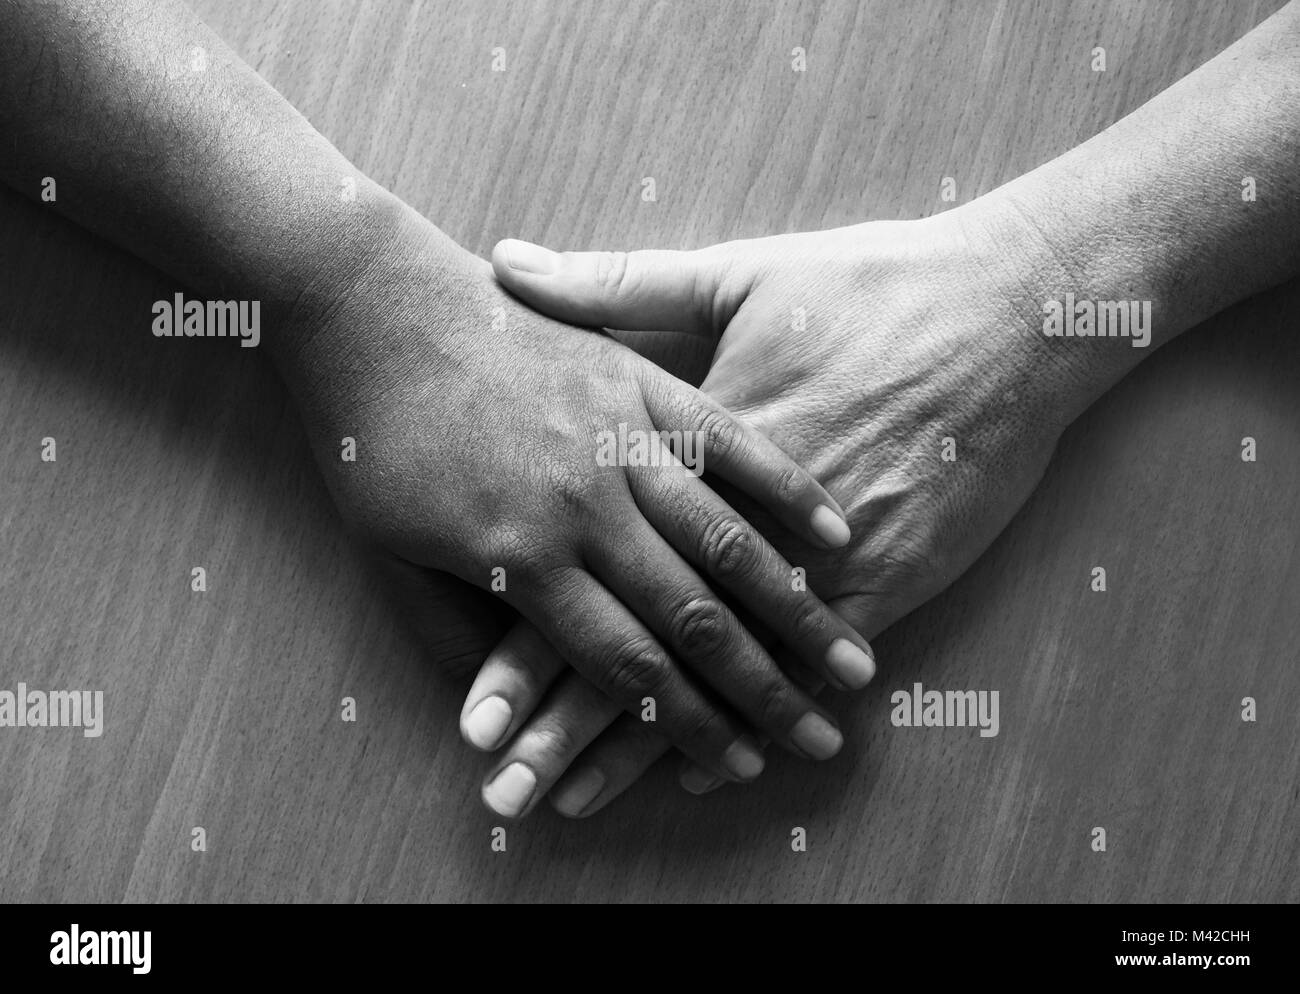 looking down on two fifty year old female hands and lower arms placed ontop of each other, the top hand is Asian Stock Photo